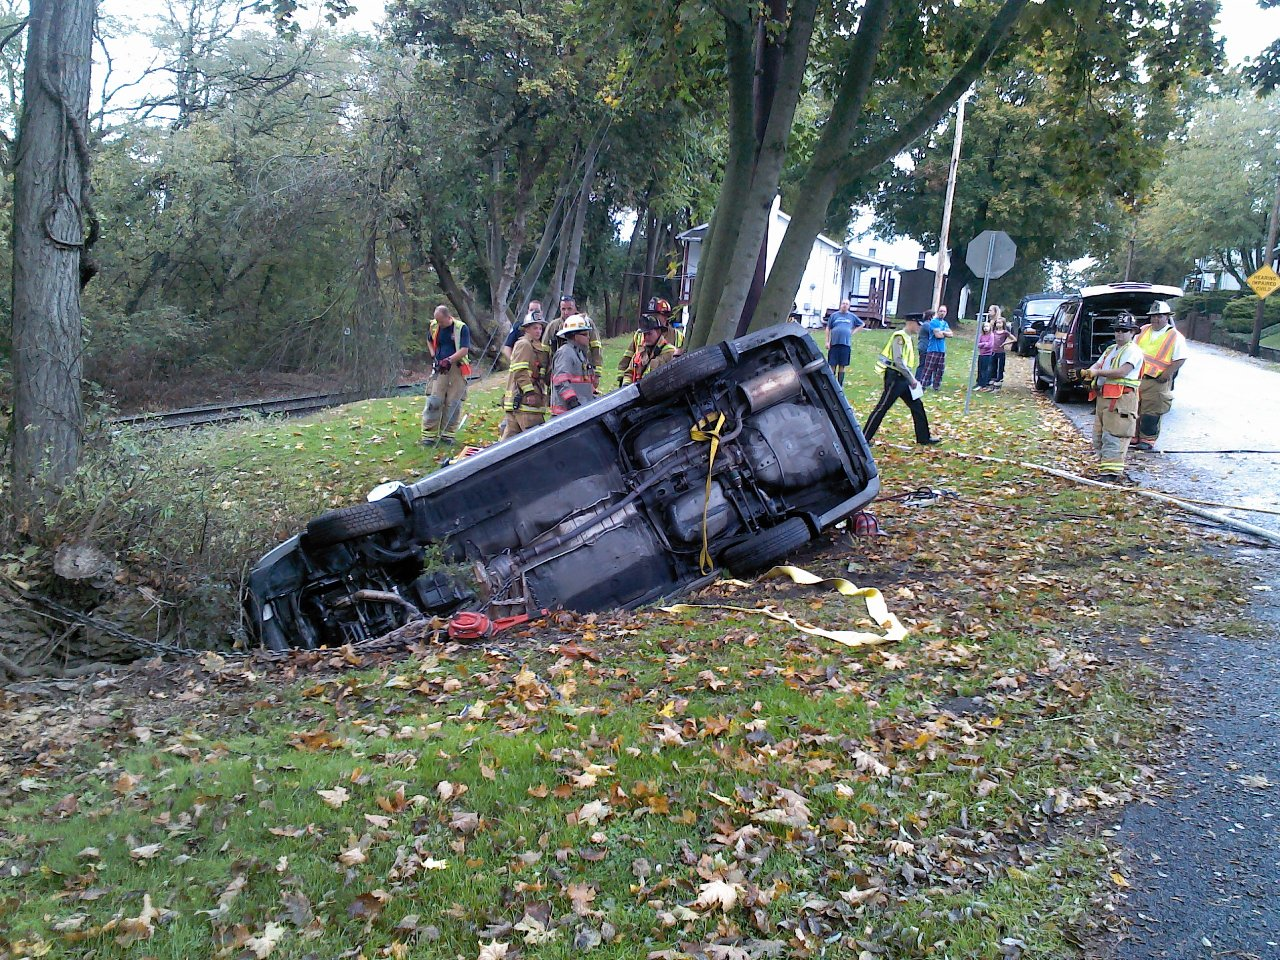 Vehicle Accident News Stories & Articles: Family sustains